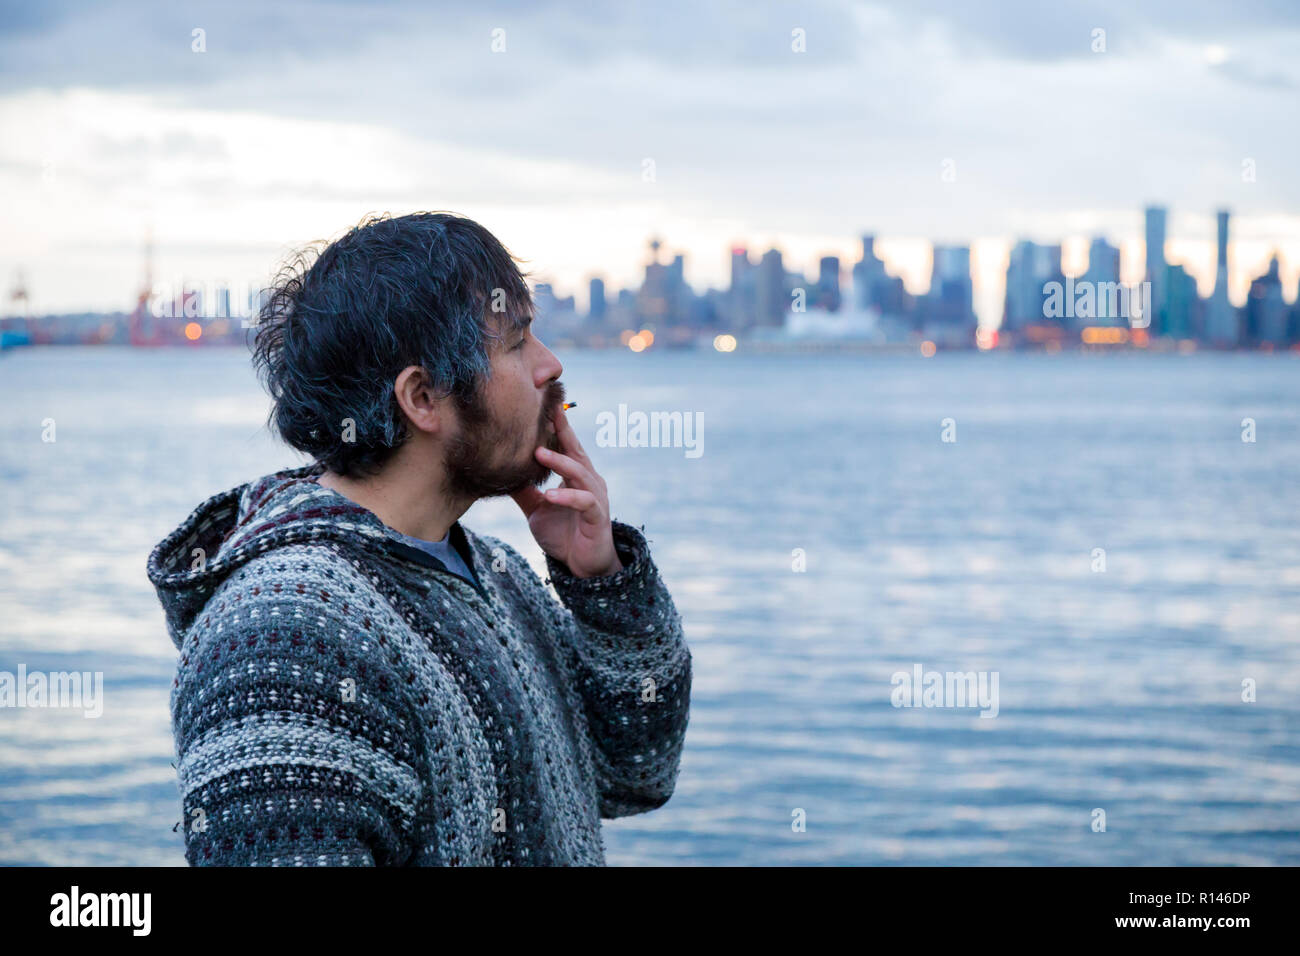 A young man smoking a joint with downtown Vancouver, BC, in the background shortly after Canadian marijuana legalization. - Stock Image